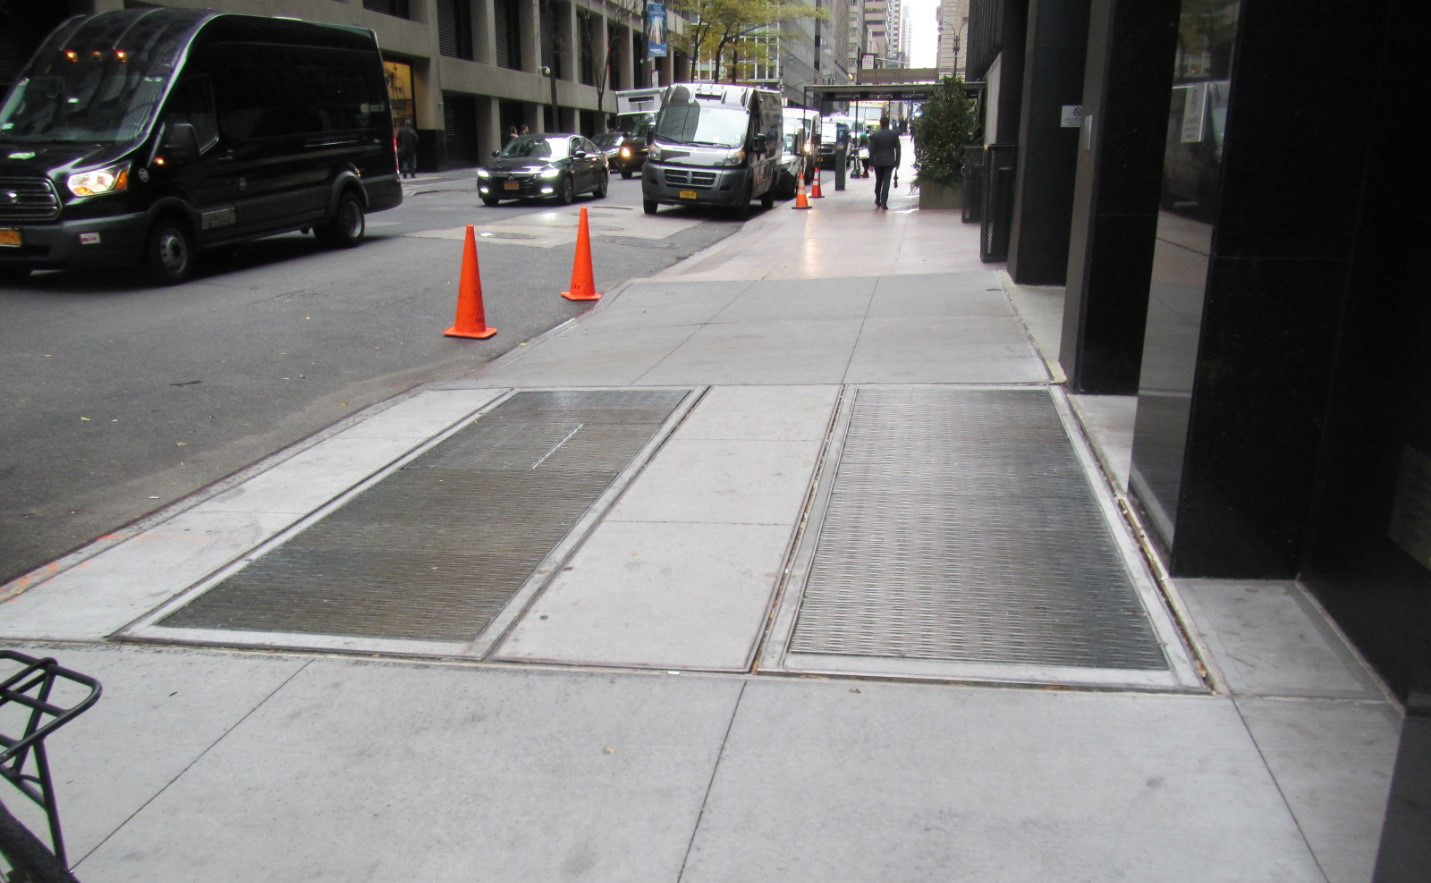 Ventilation covers on a sidewalk.